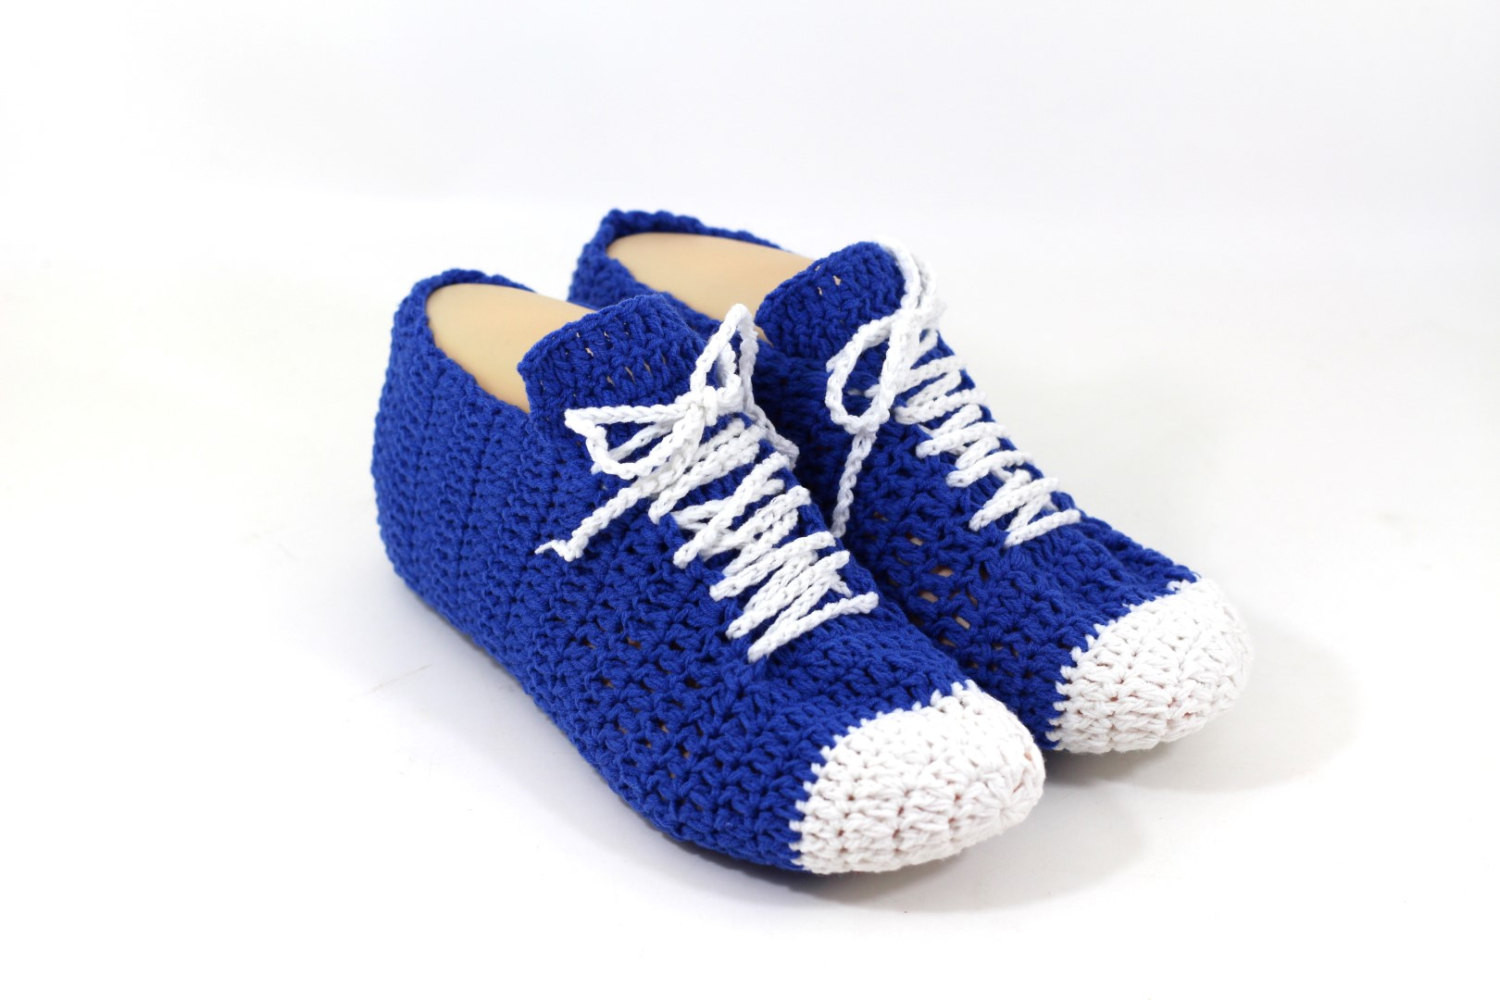 Crochet Sneakers New Crochet Pattern Crocheted Sneaker Slippers Pattern by Etty2504 Of Gorgeous 50 Pics Crochet Sneakers